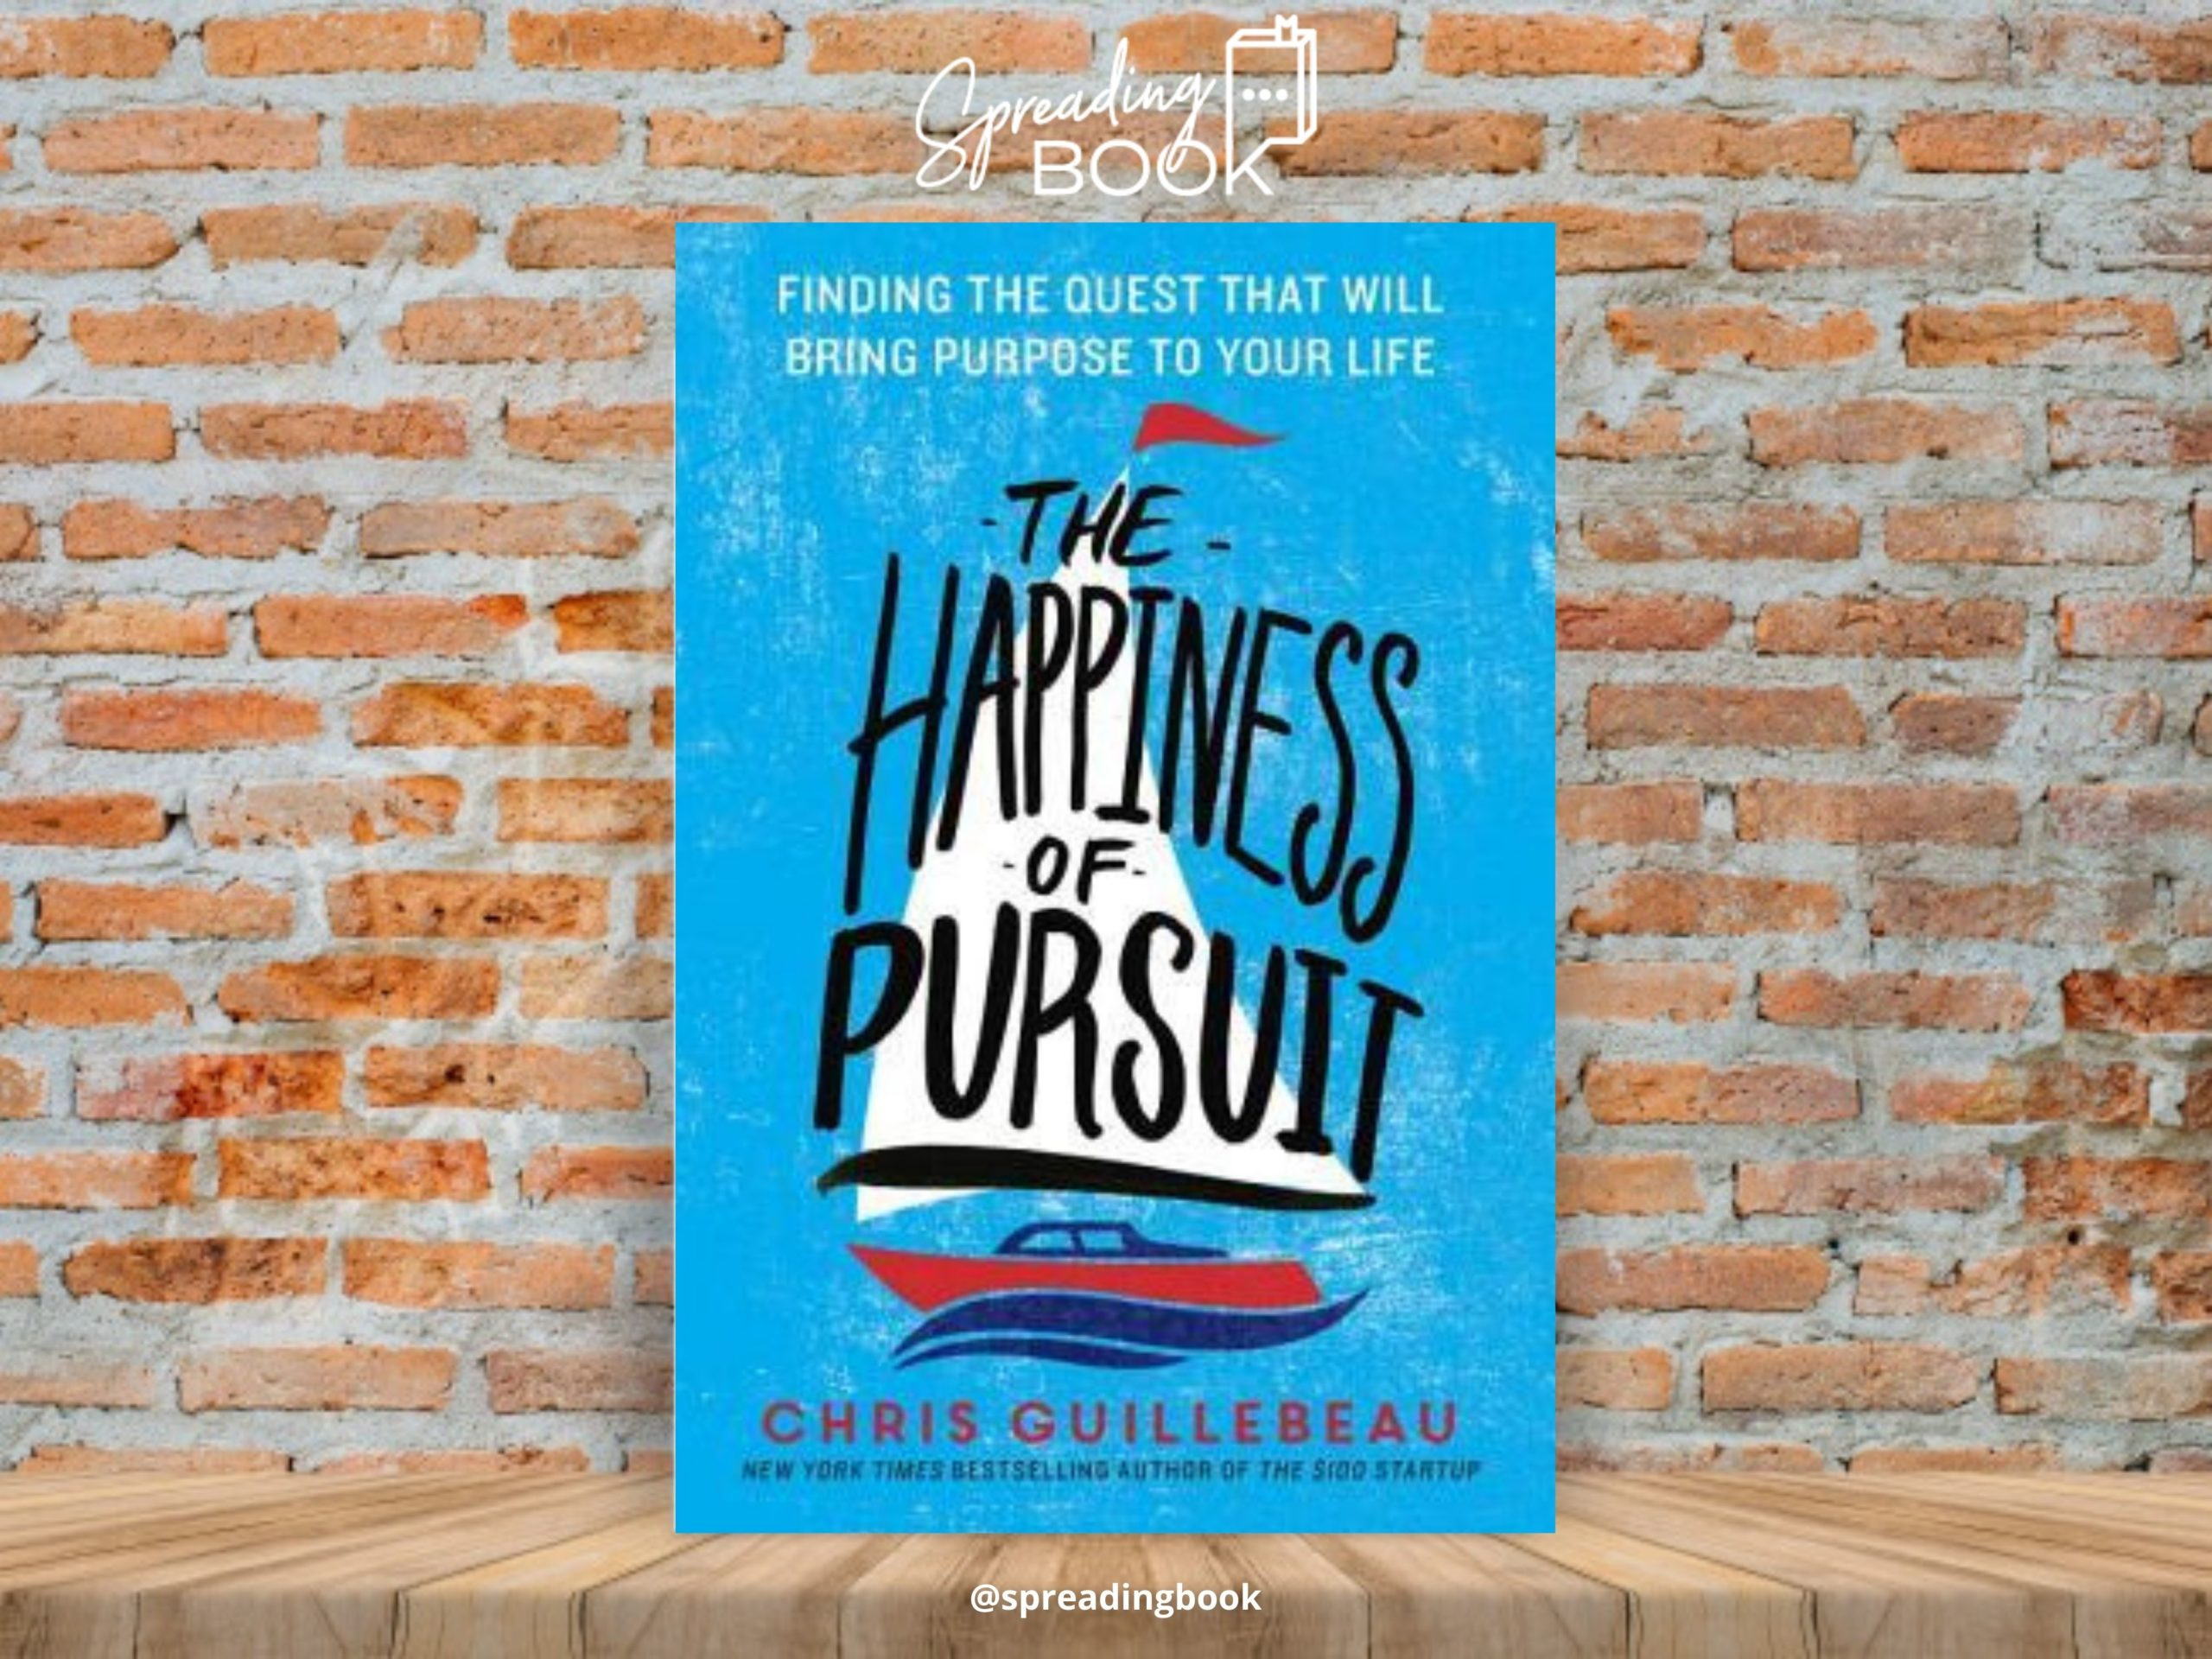 The Happiness of Pursuit__SpreadingBook